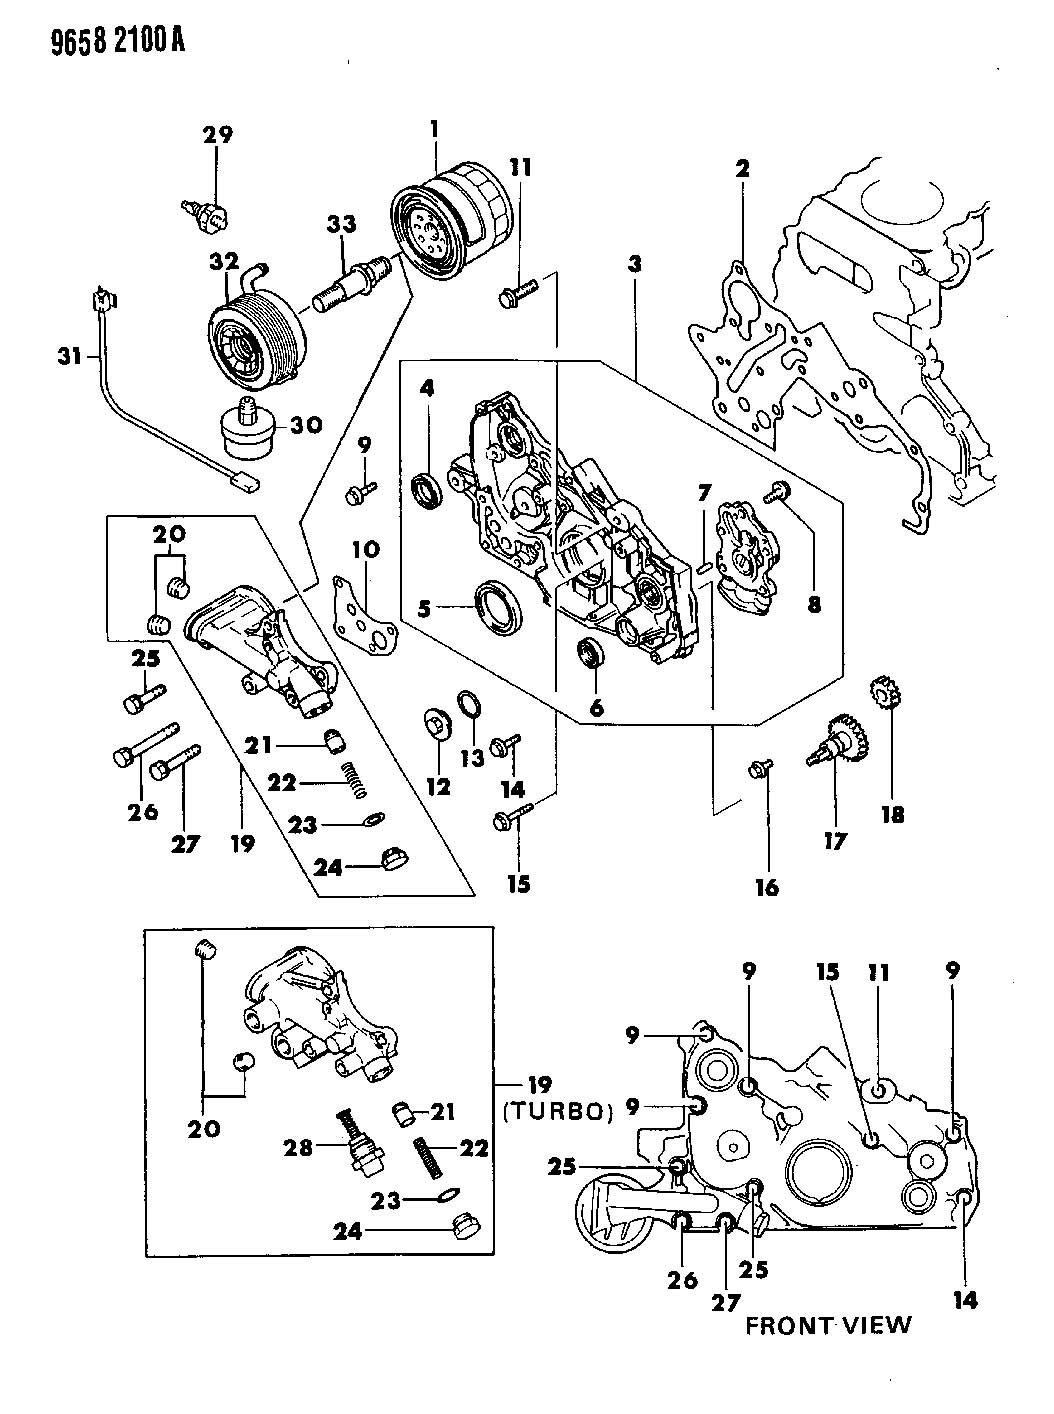 Service manual [Oil Pump Removal Procedure For A 1991